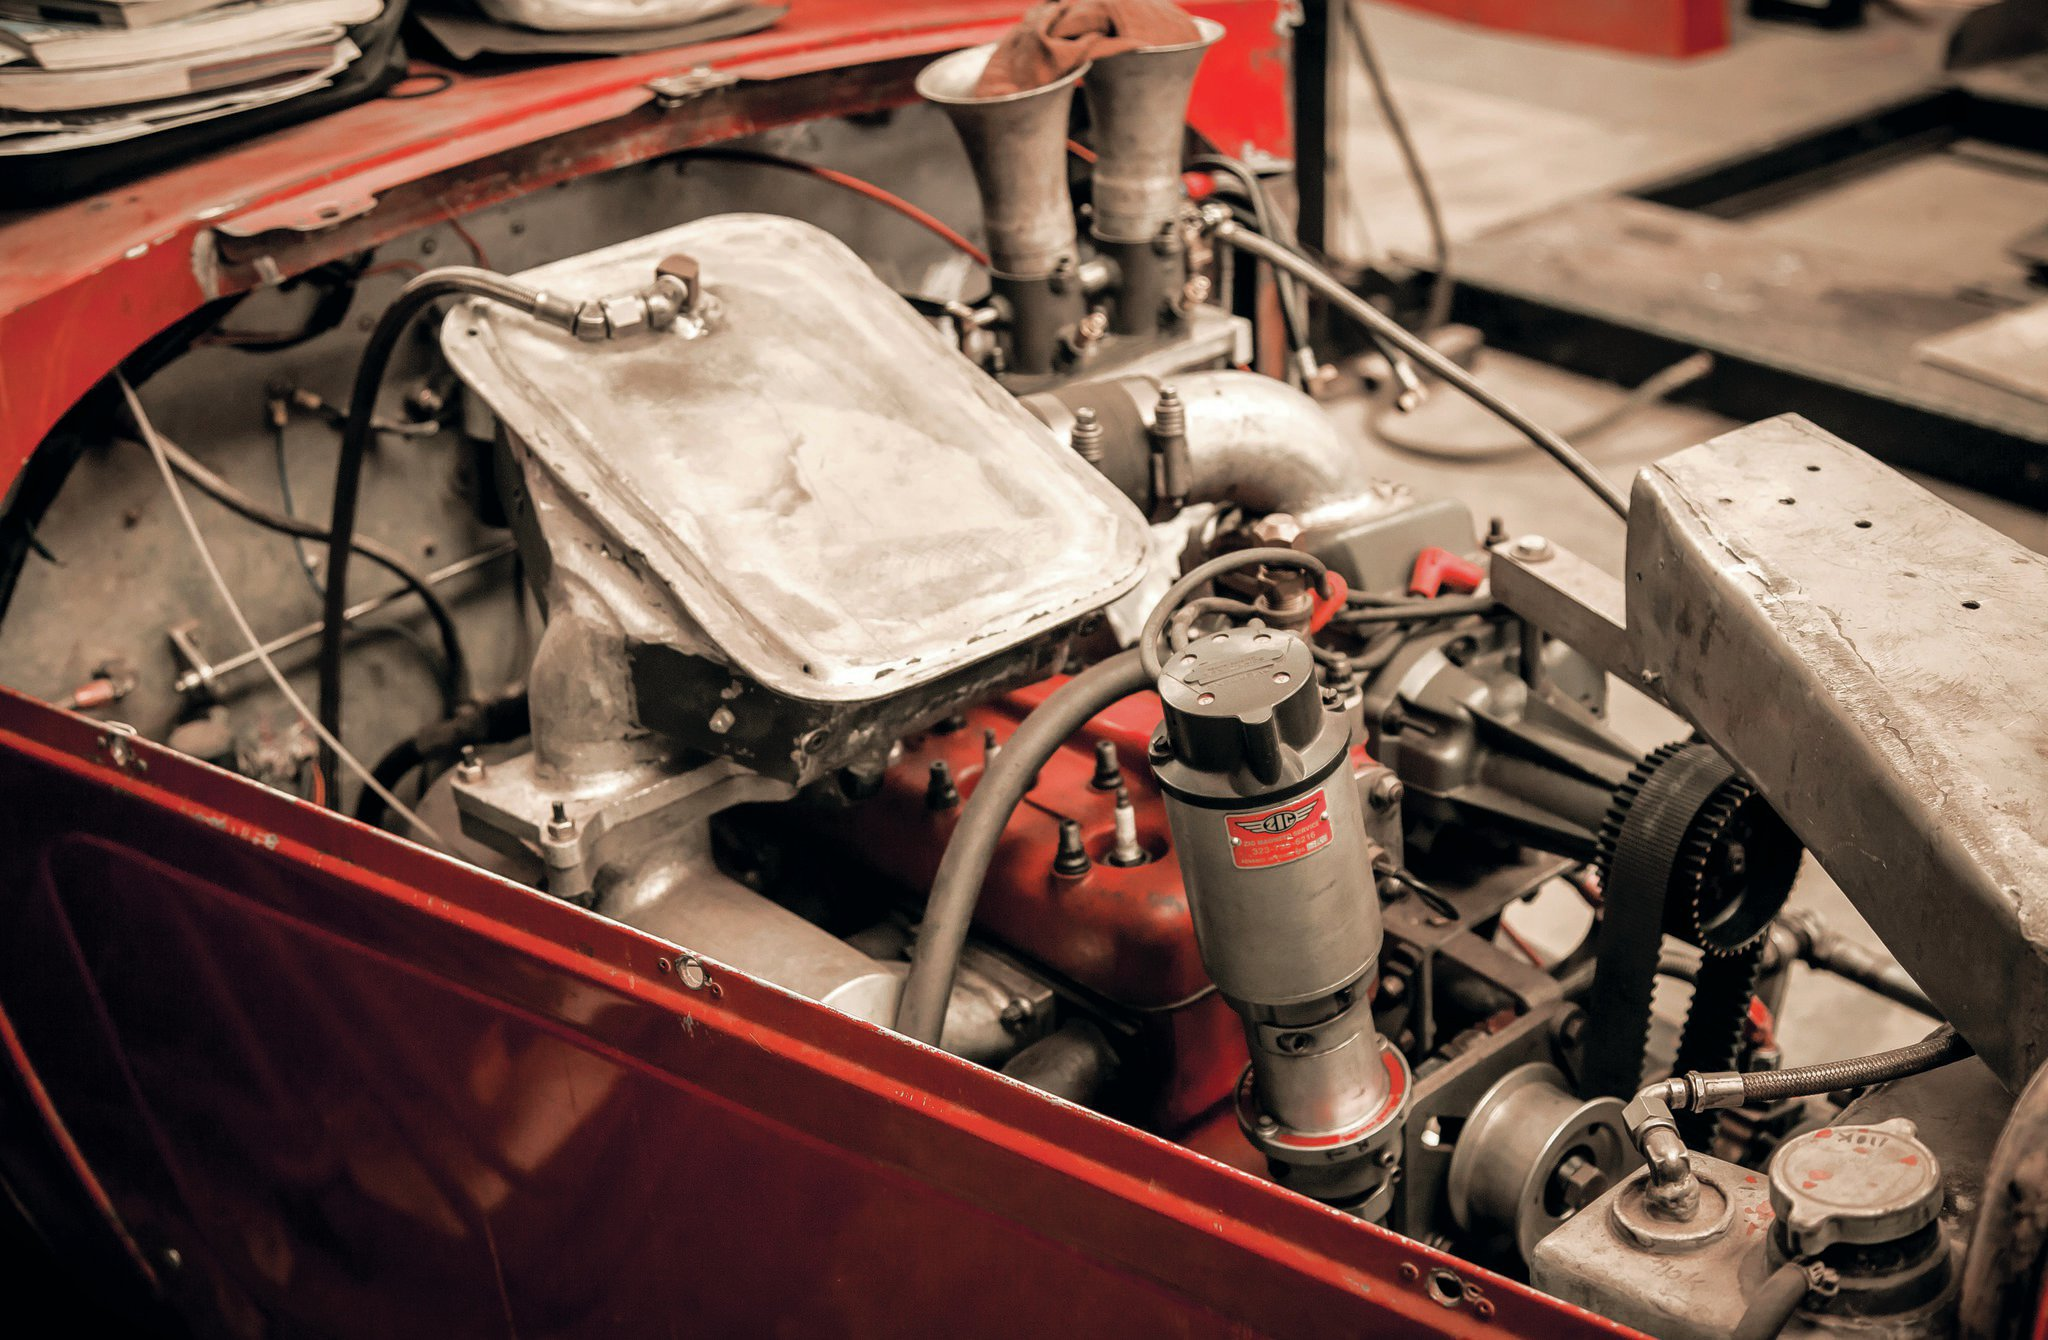 A virtual twin to 32, the number 3032 lakes roadster has a blown banger with custom-fabricated intake plenums and ducting. Harold brings a lot of experience to bear on these engines, and he's always testing new setups.